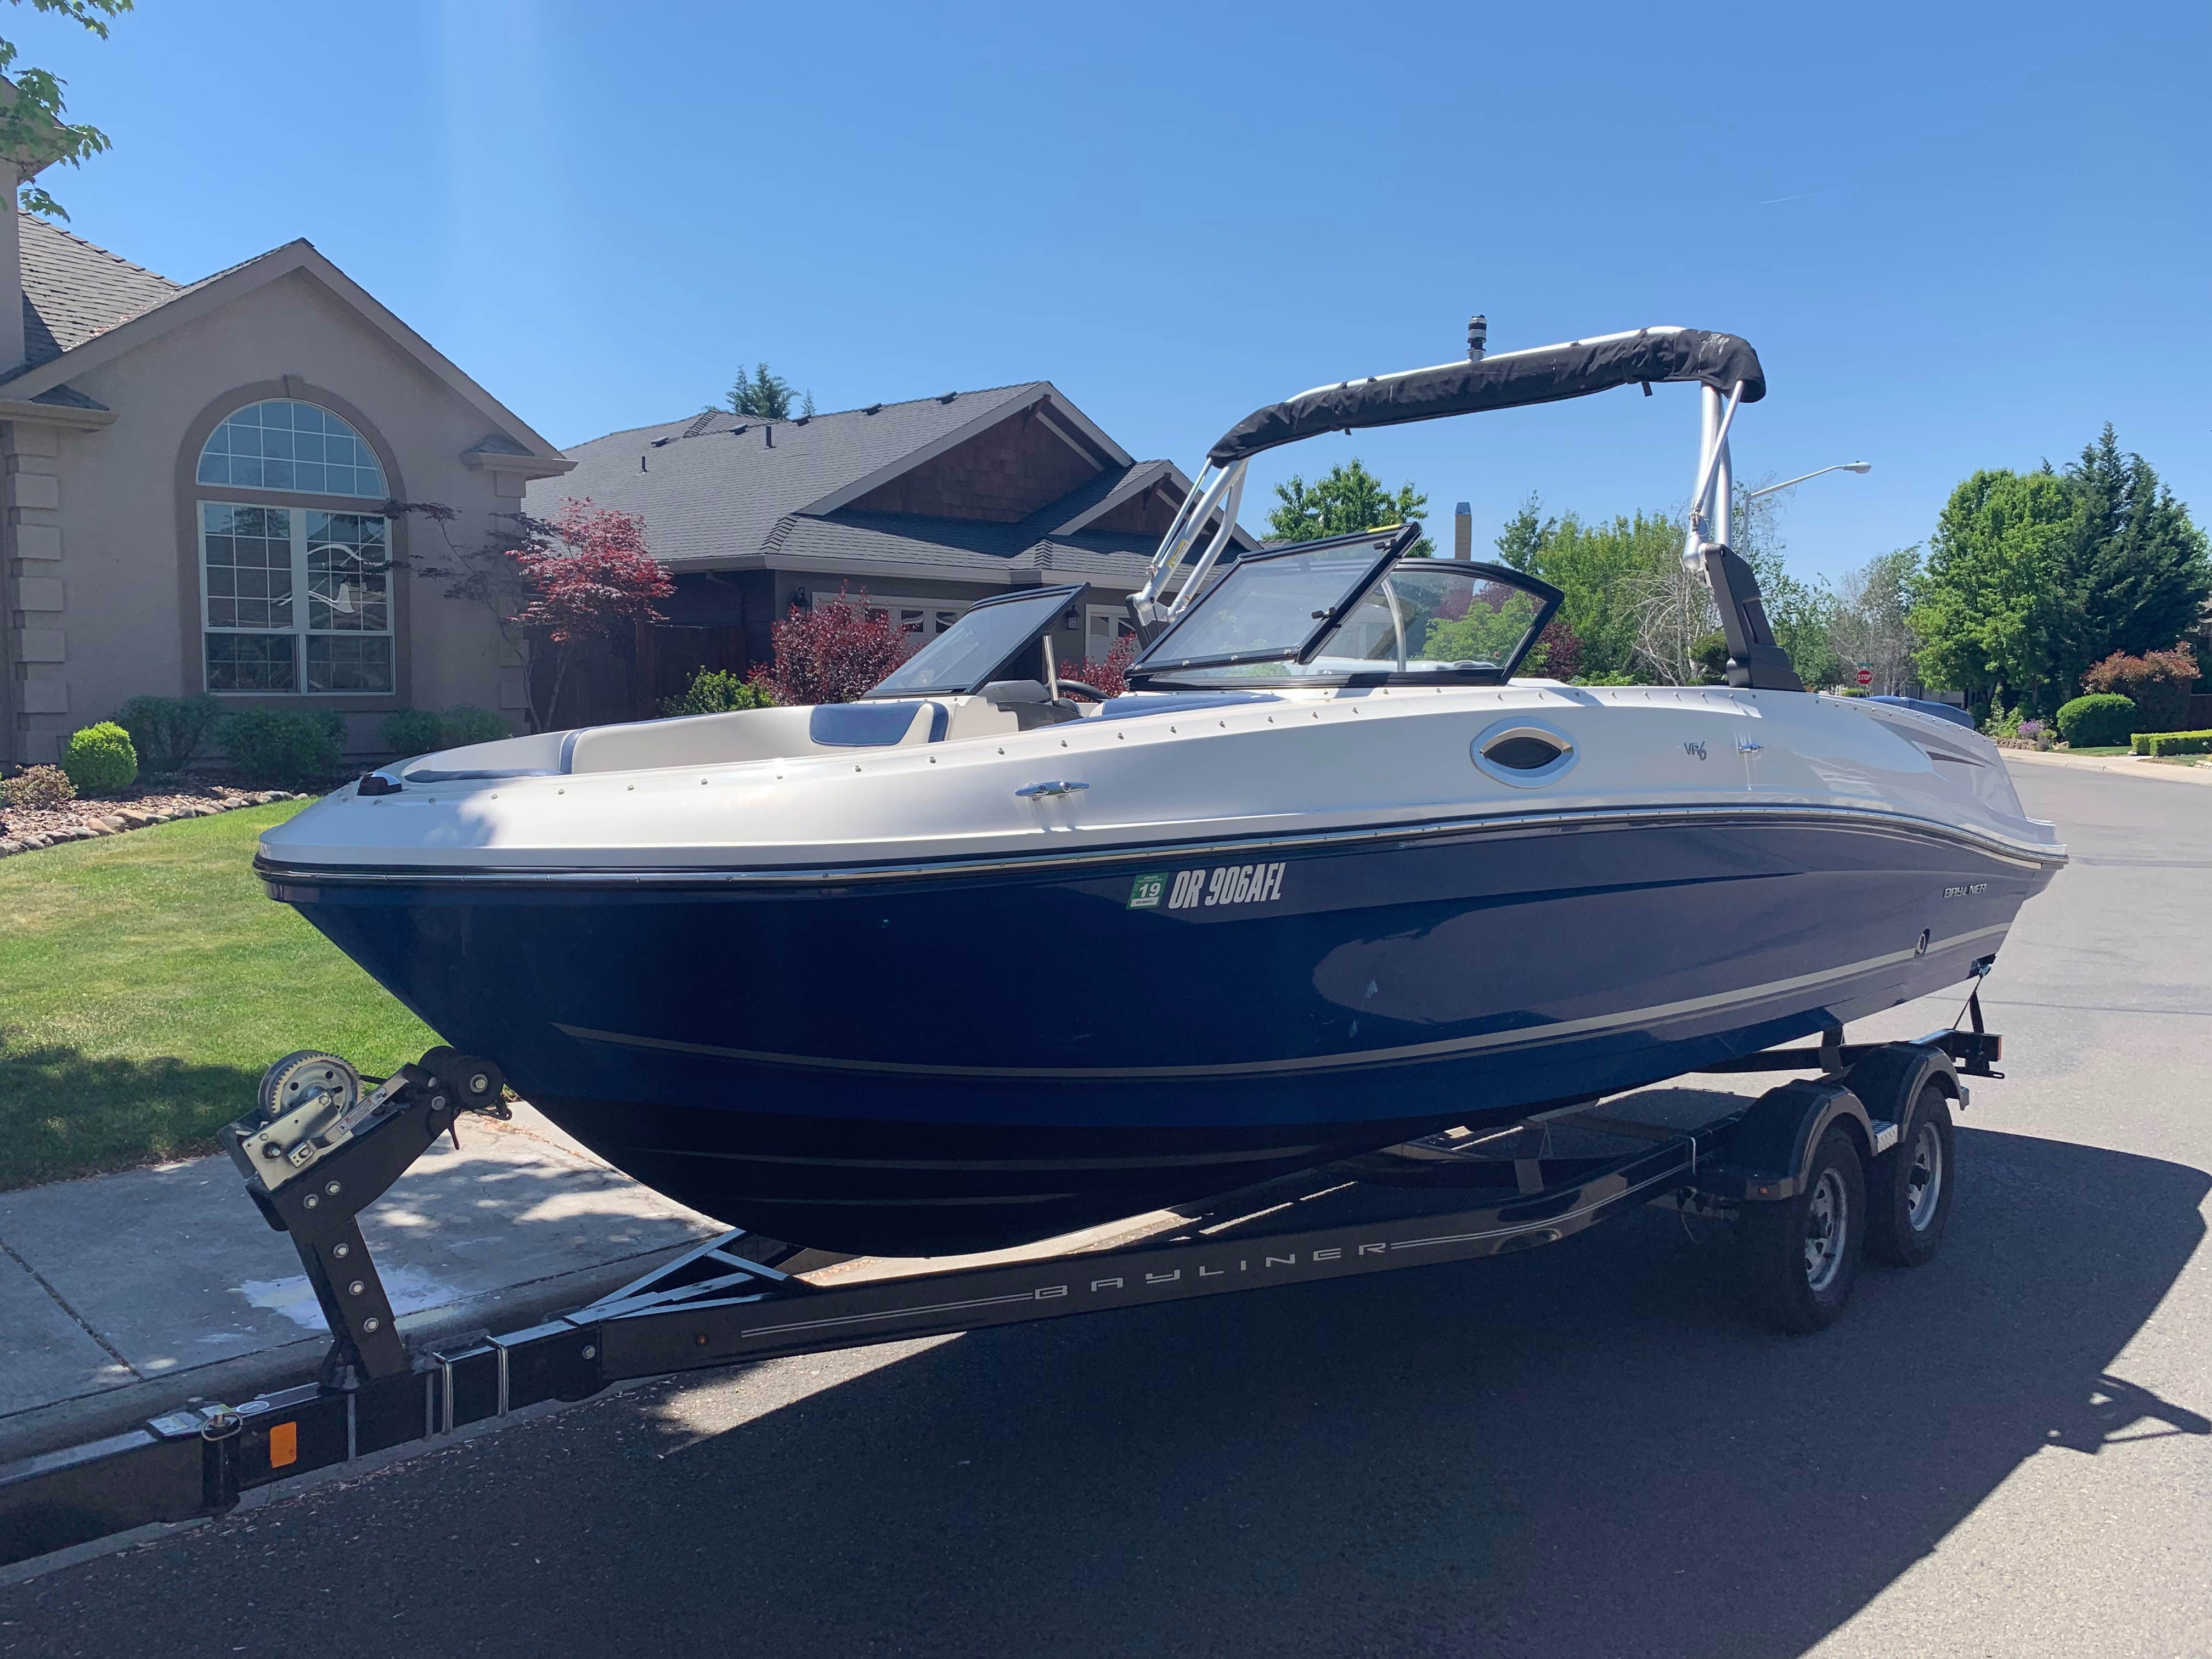 Boats for sale in 97601 - Boat Trader